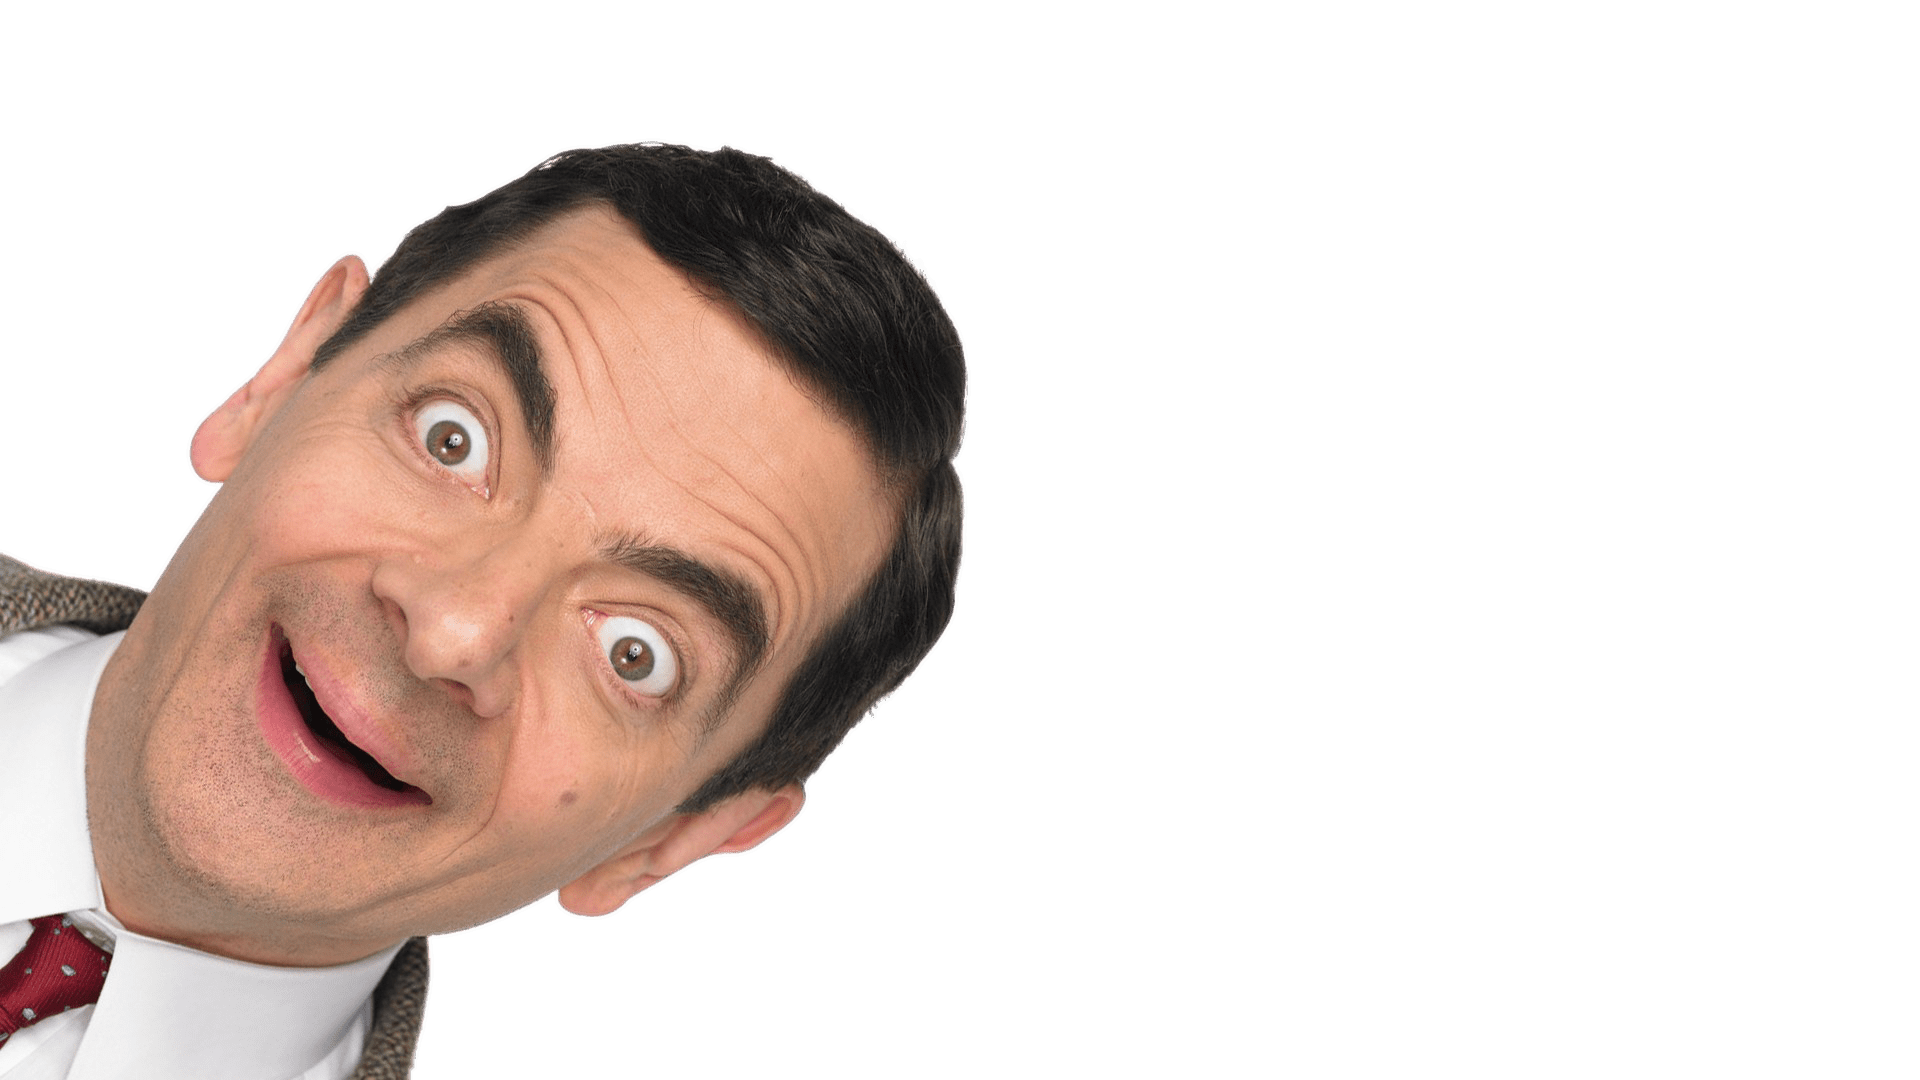 uploads mr bean mr bean PNG32 4